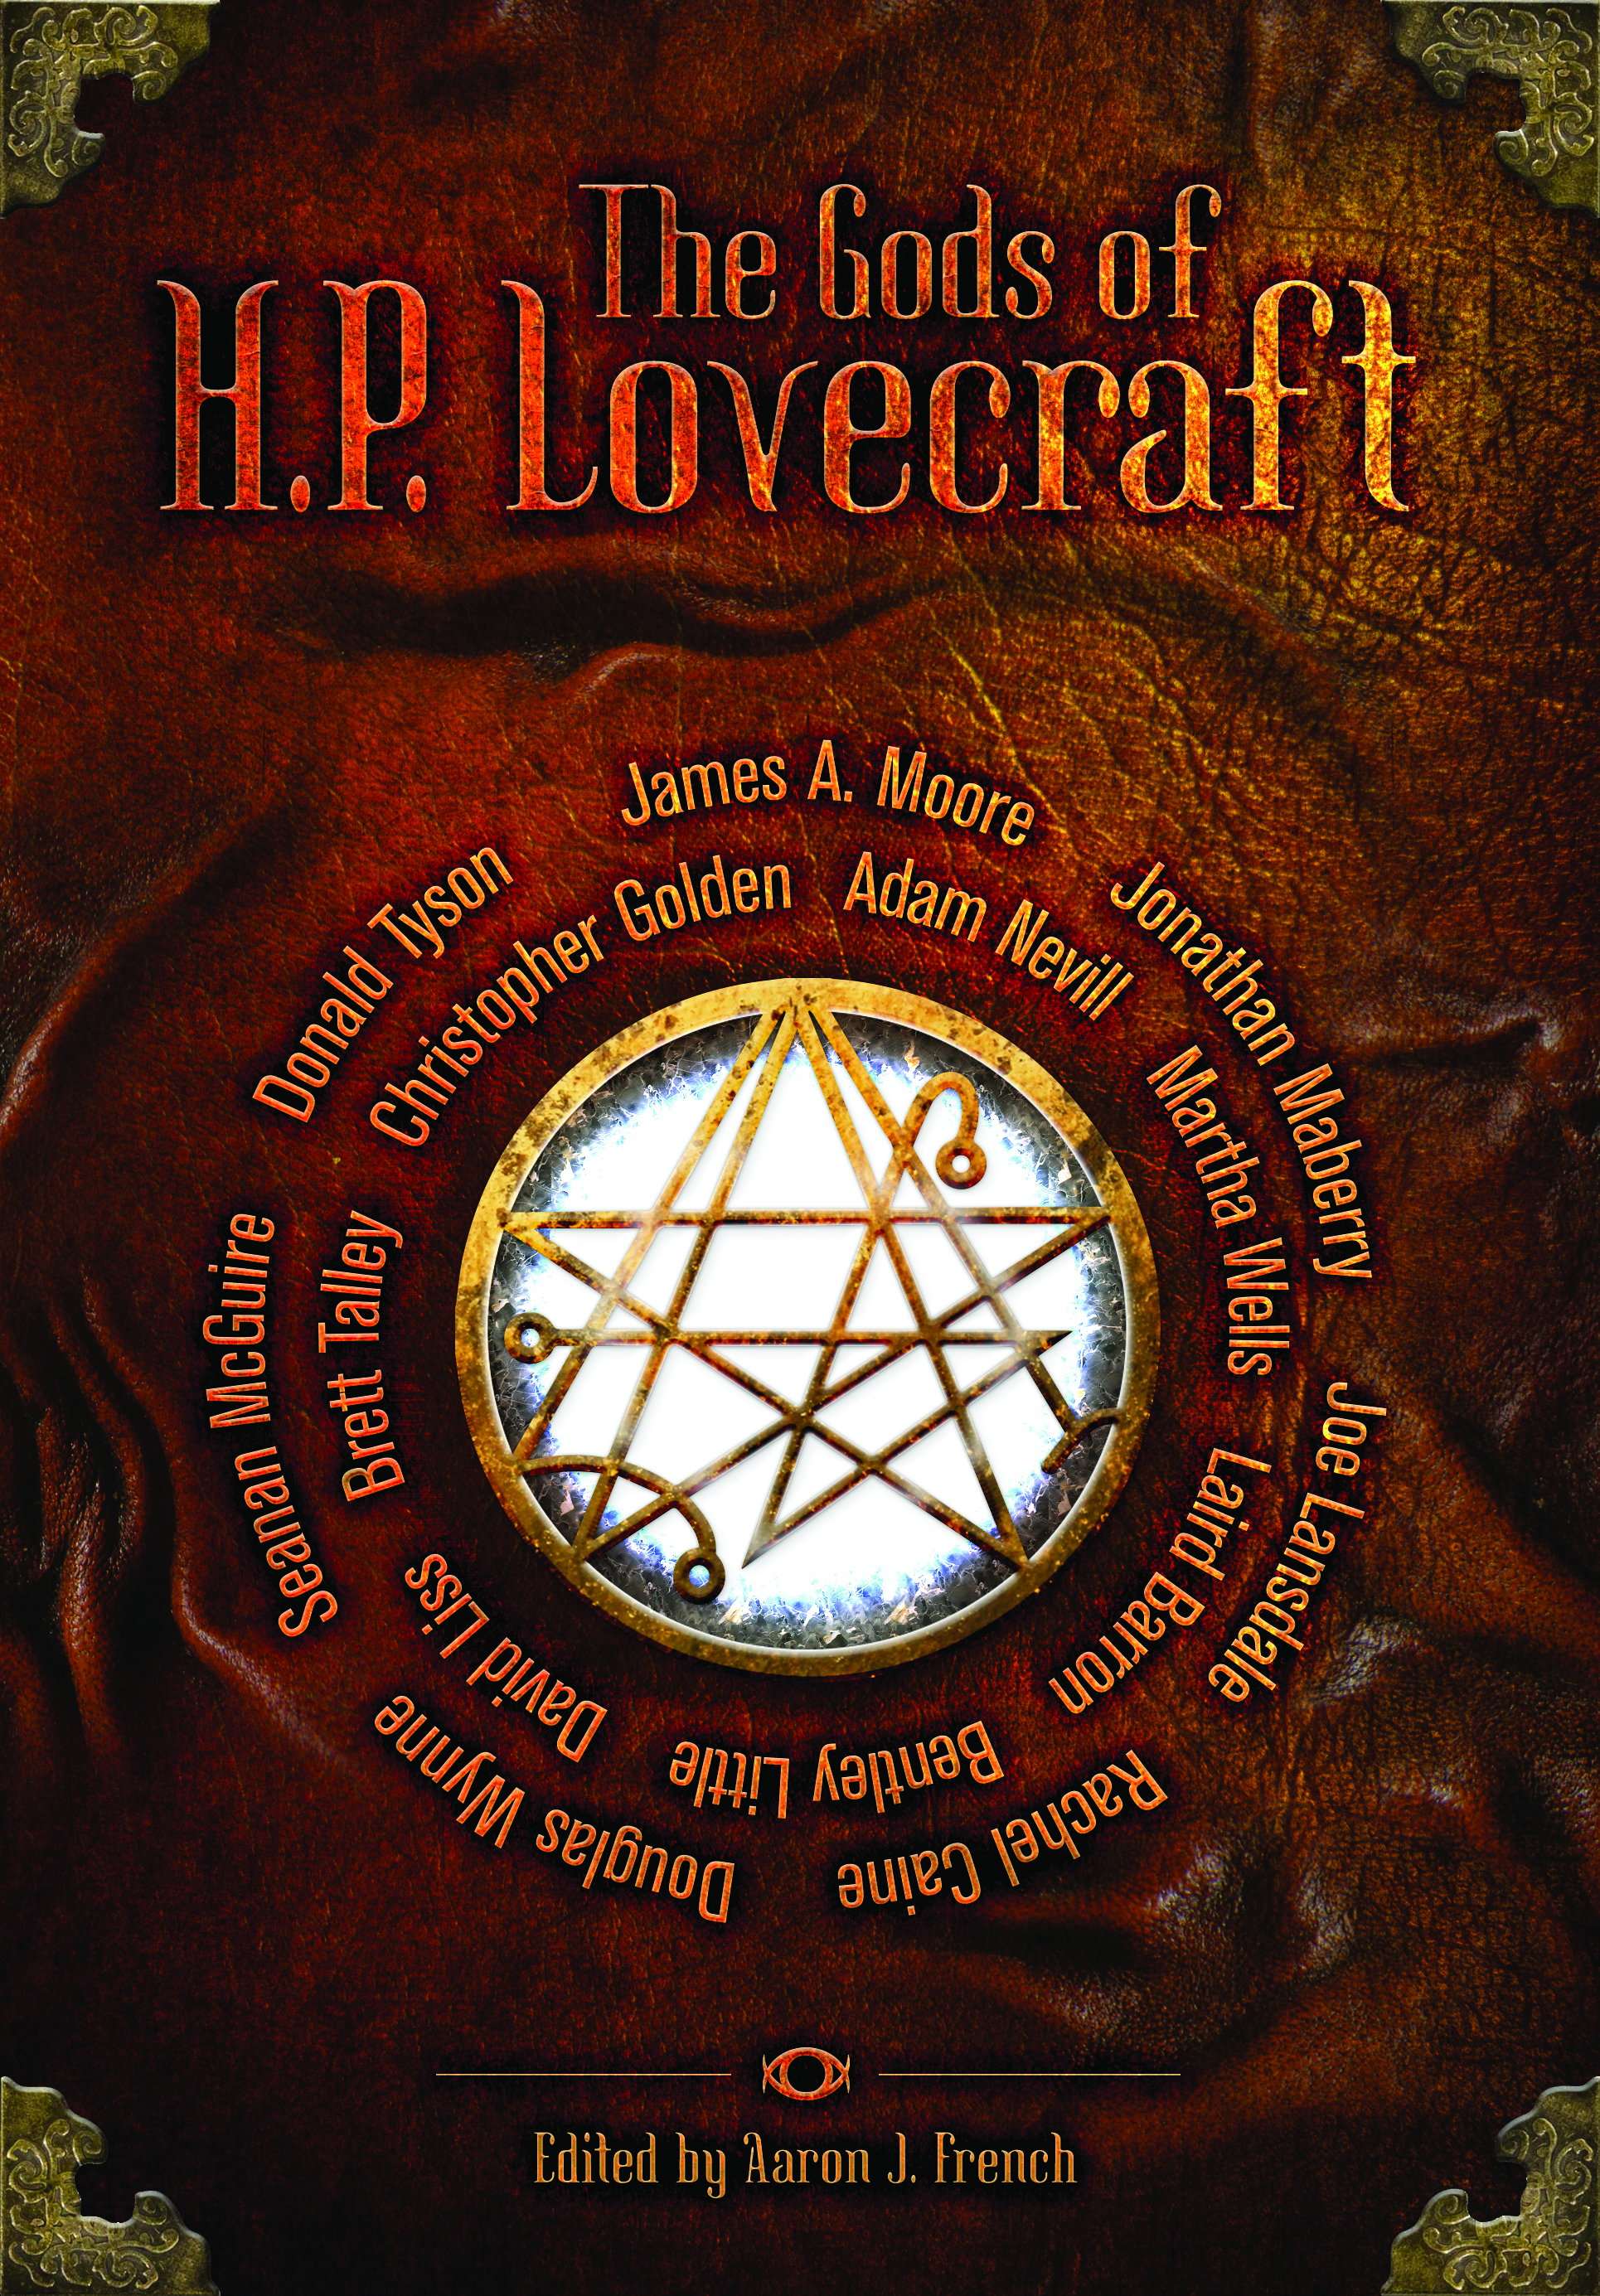 the gods of hp lovecraft journalstone front cover image tgohplc